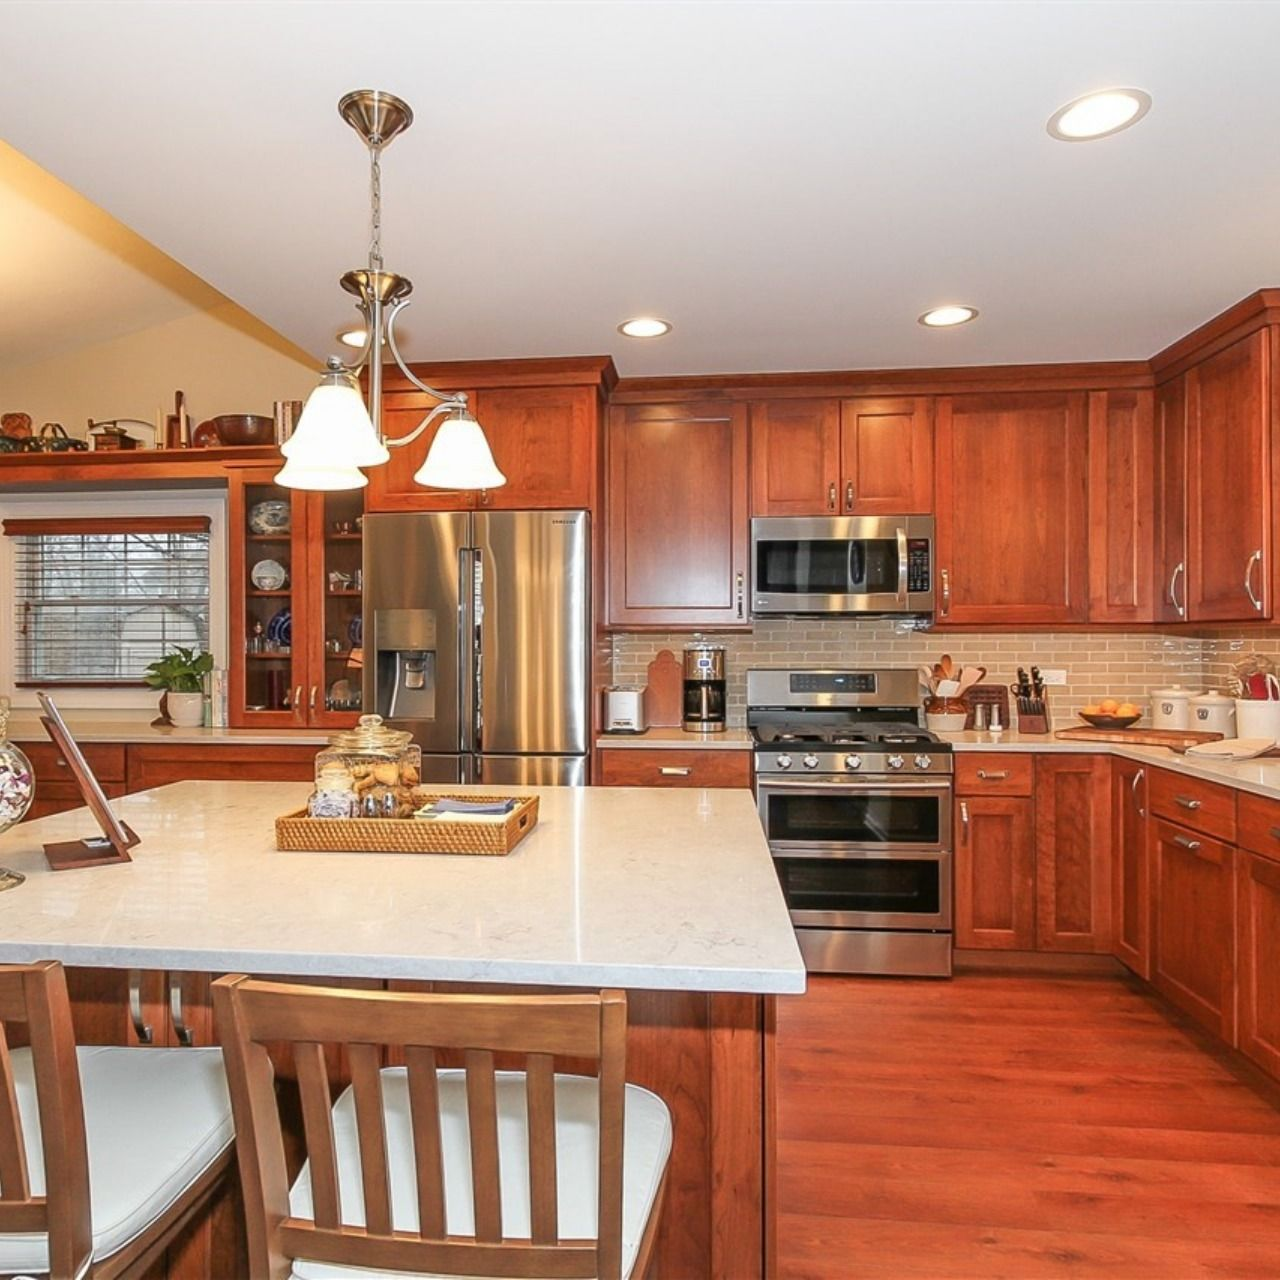 Home Design Basement Ideas: Pin By Rosseland Remodeling On Kitchen Remodeling Ideas